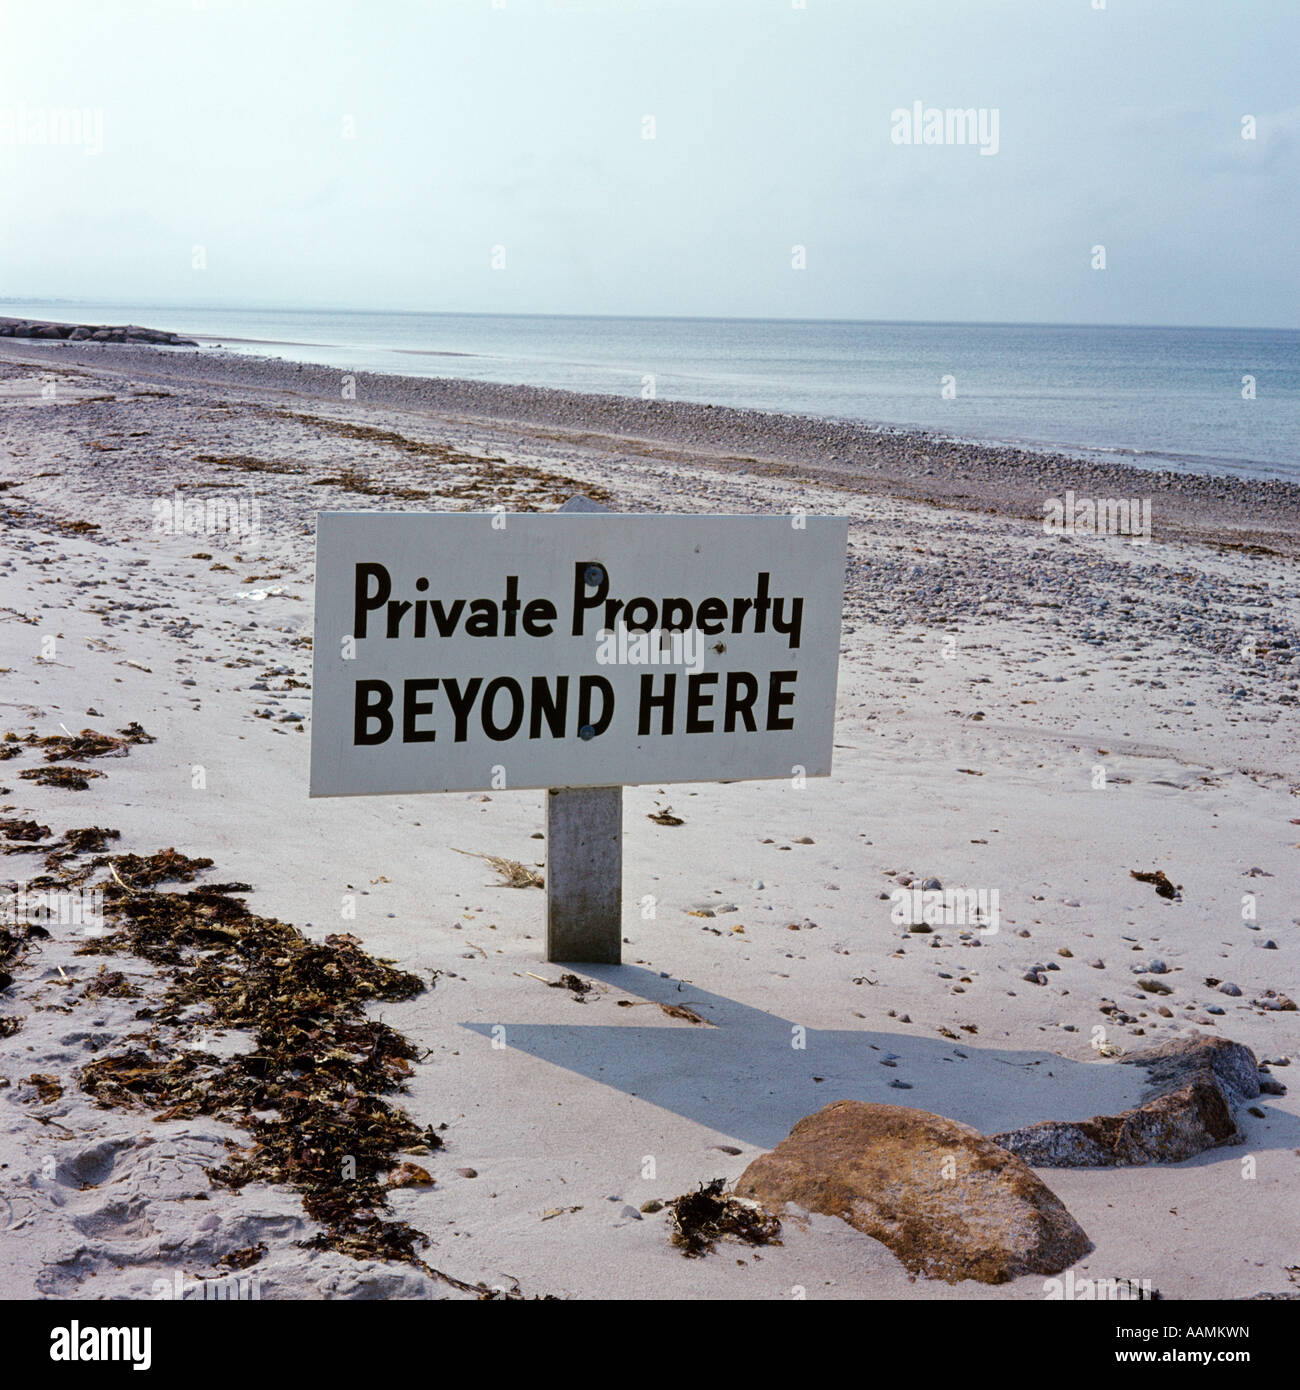 PRIVATE PROPERTY BEYOND HERE BEACH SIGN OCEAN - Stock Image